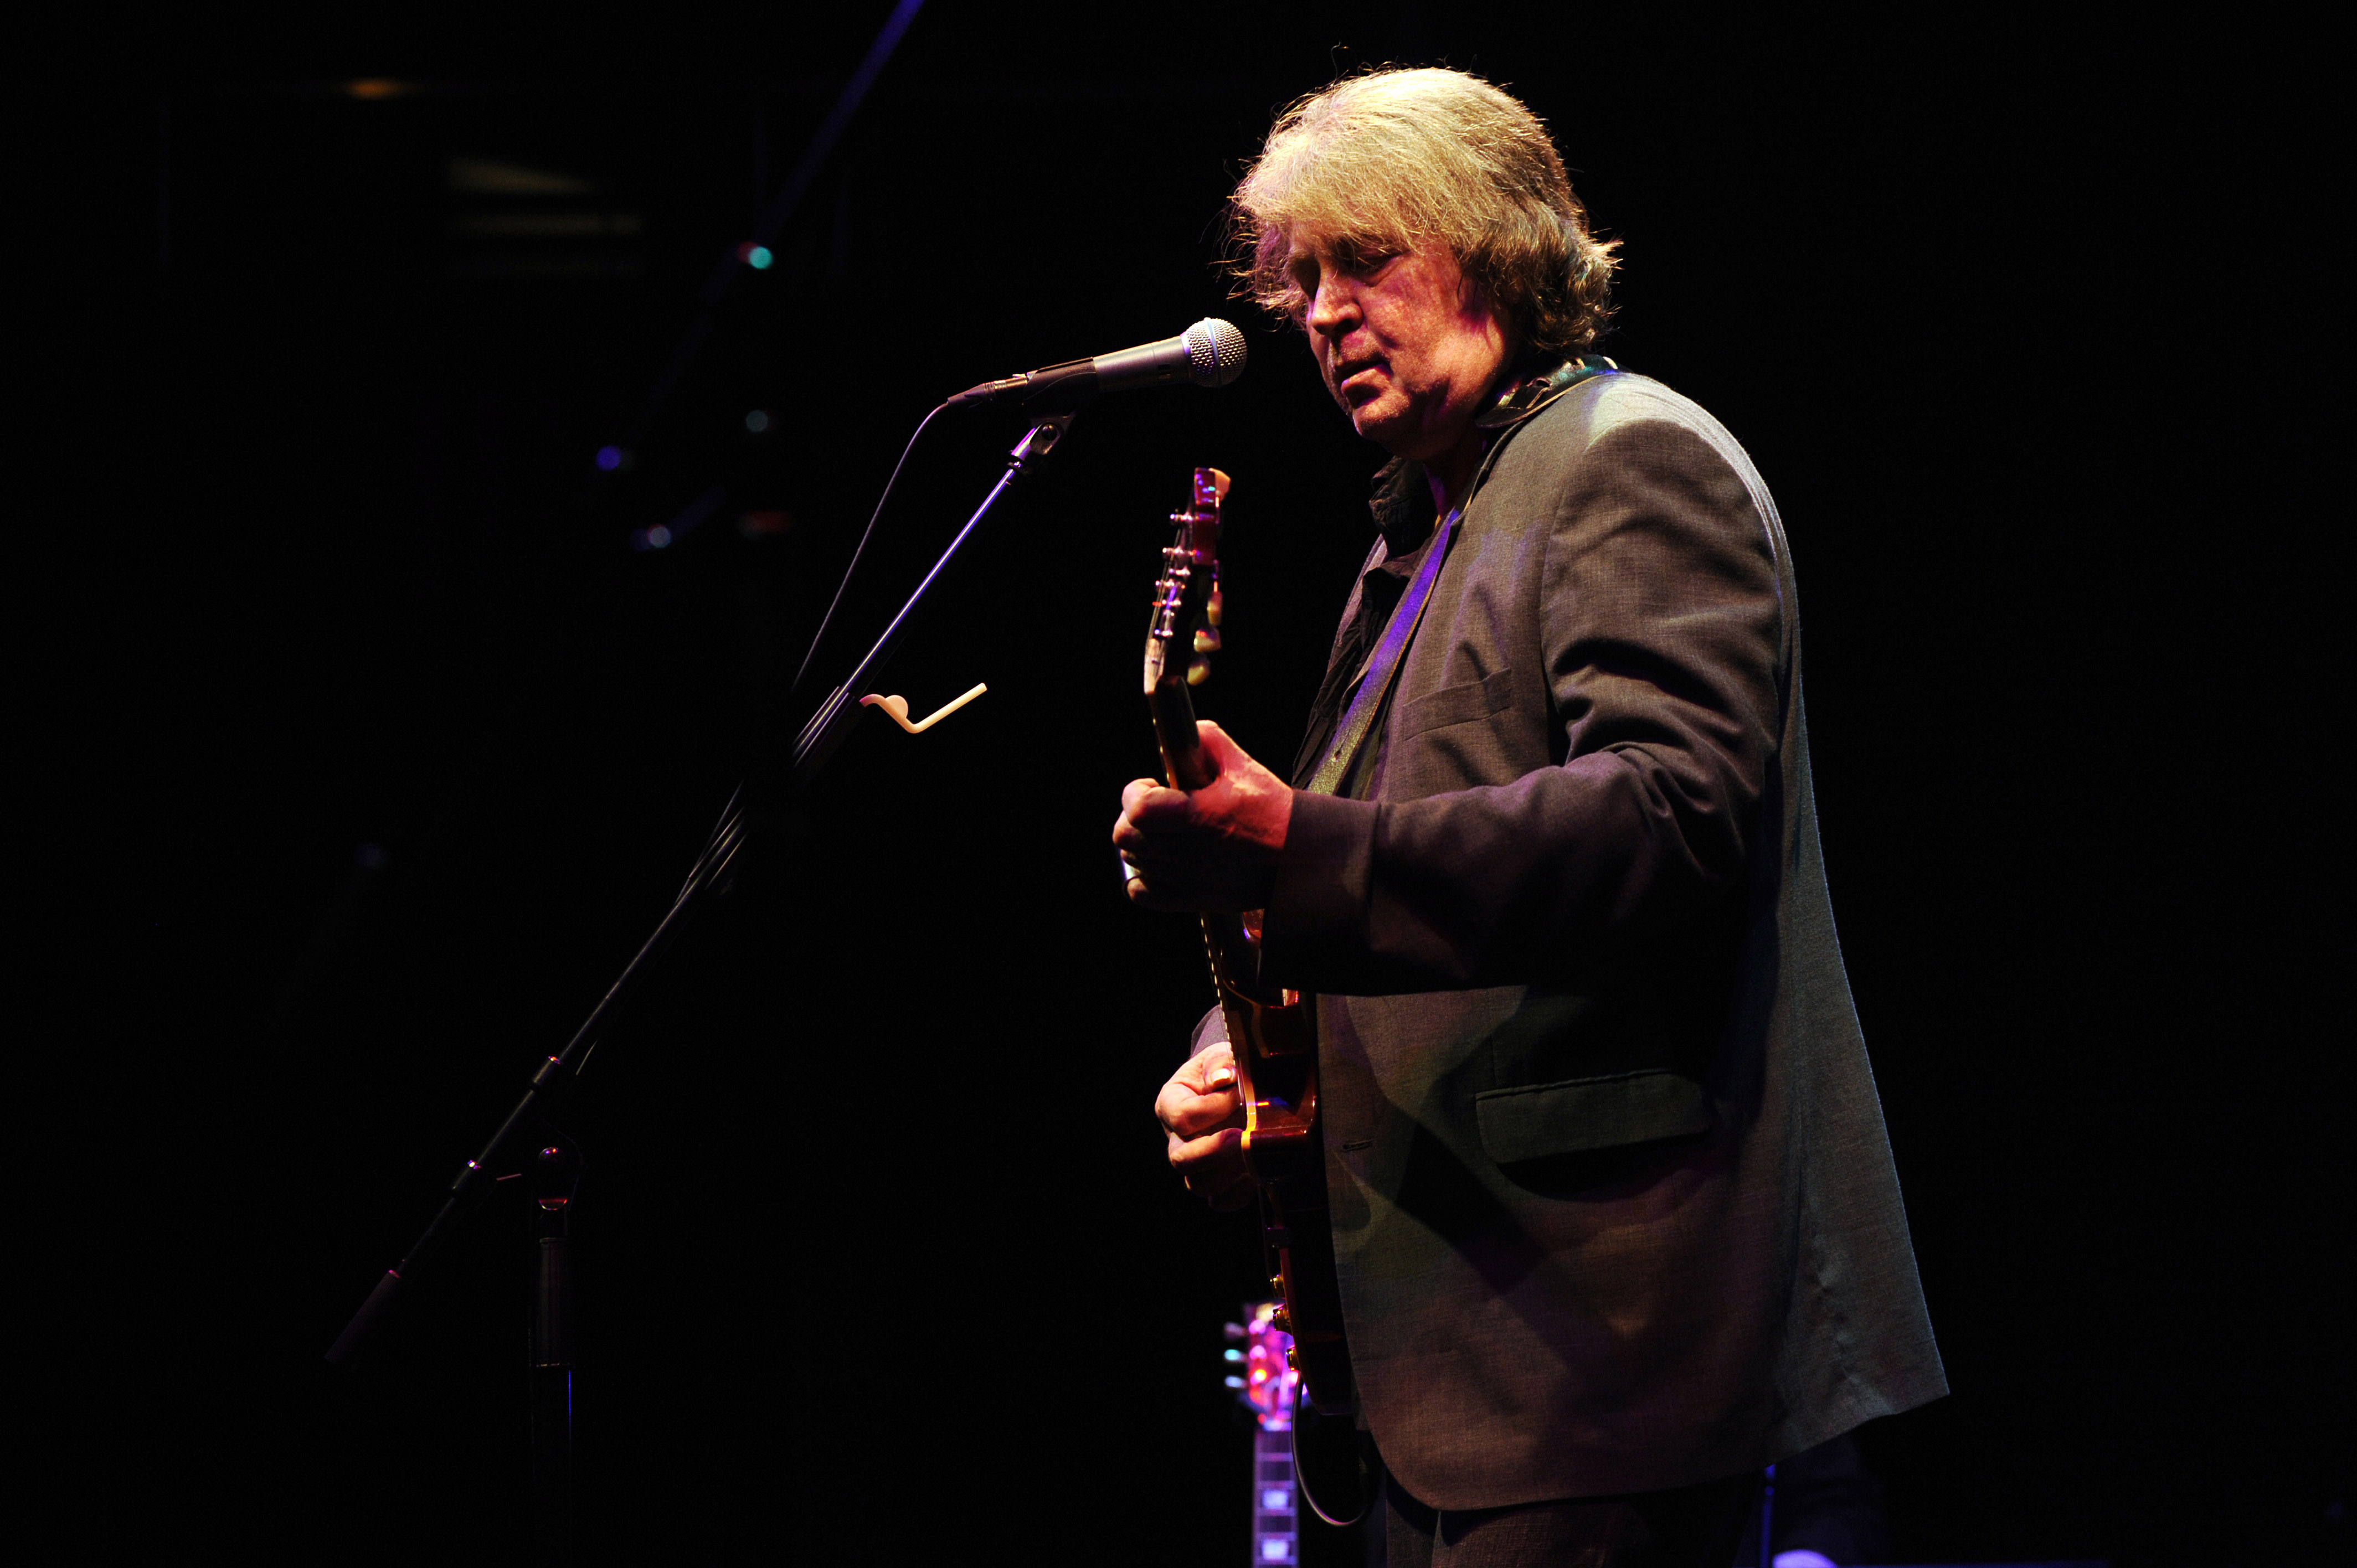 Mick Taylor, The Guitar Legend Returns, Australia 2013